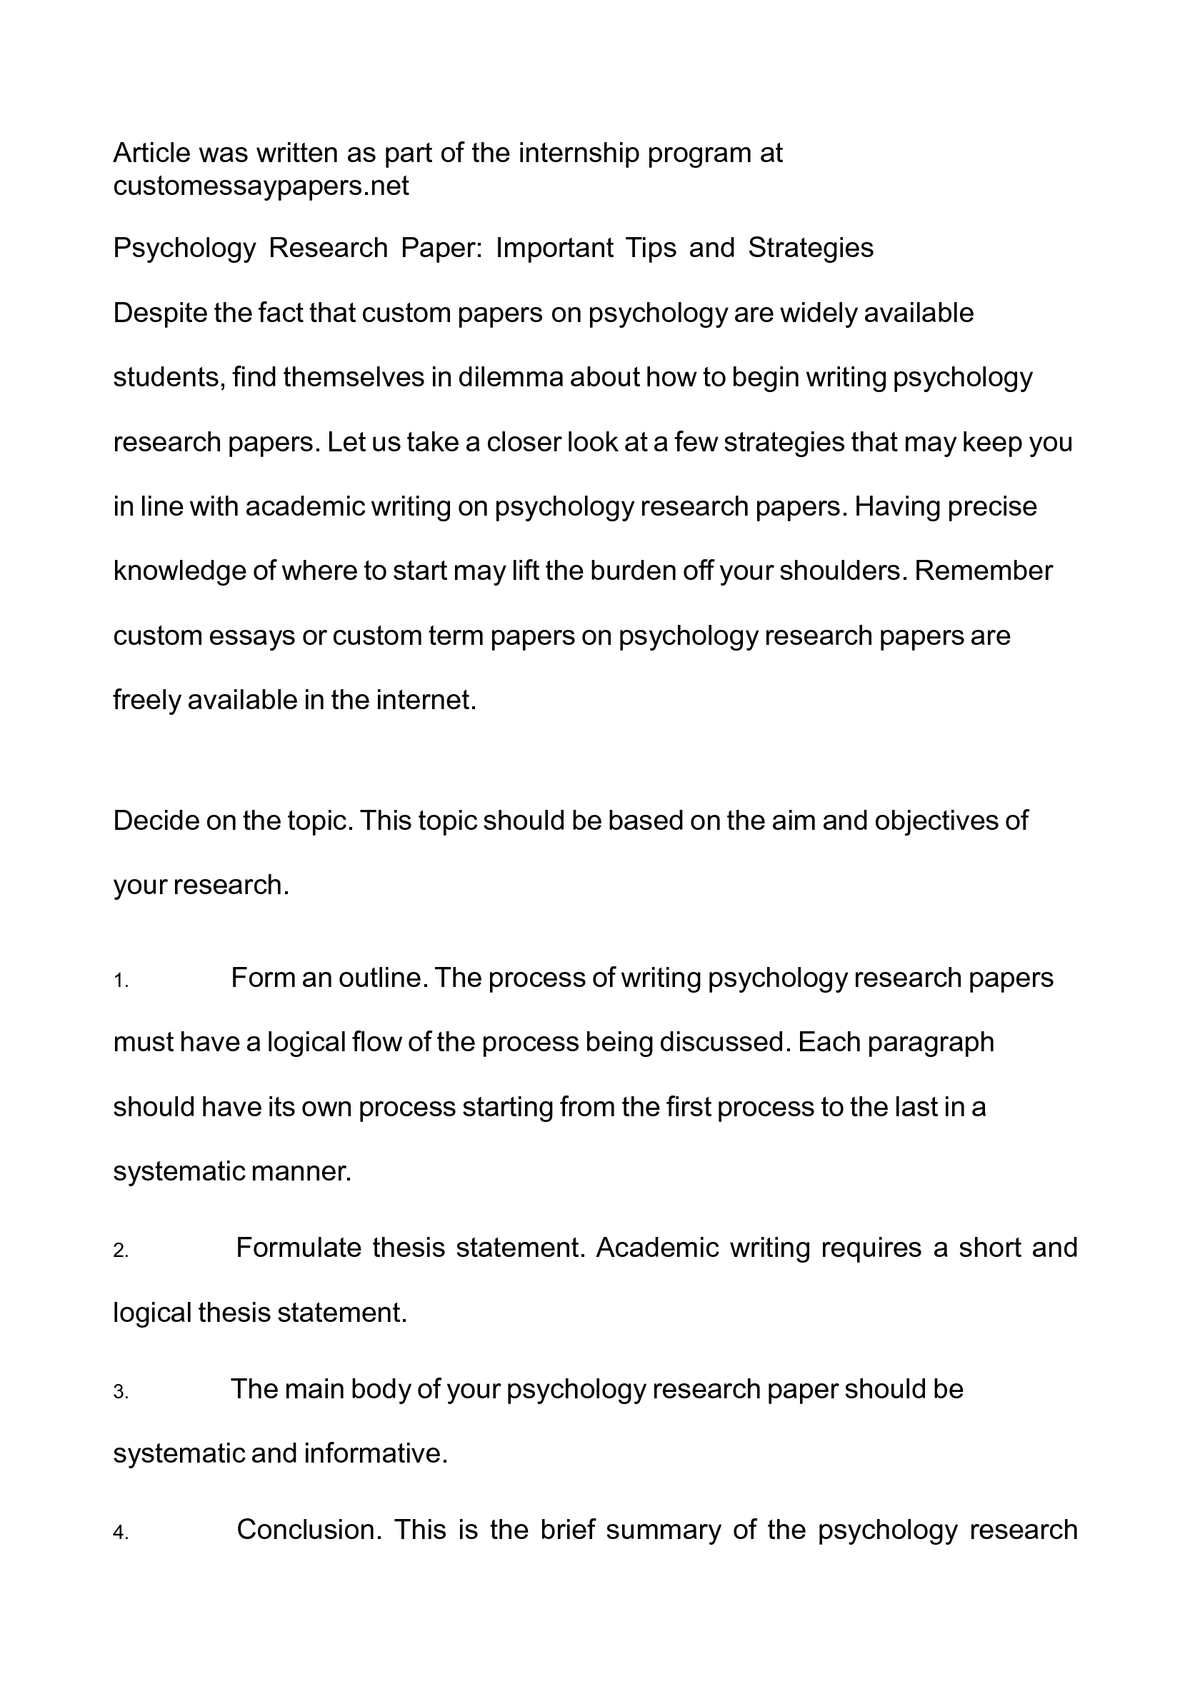 019 Psychology Research Paper Topics Striking Depression Papers On Dreams Full